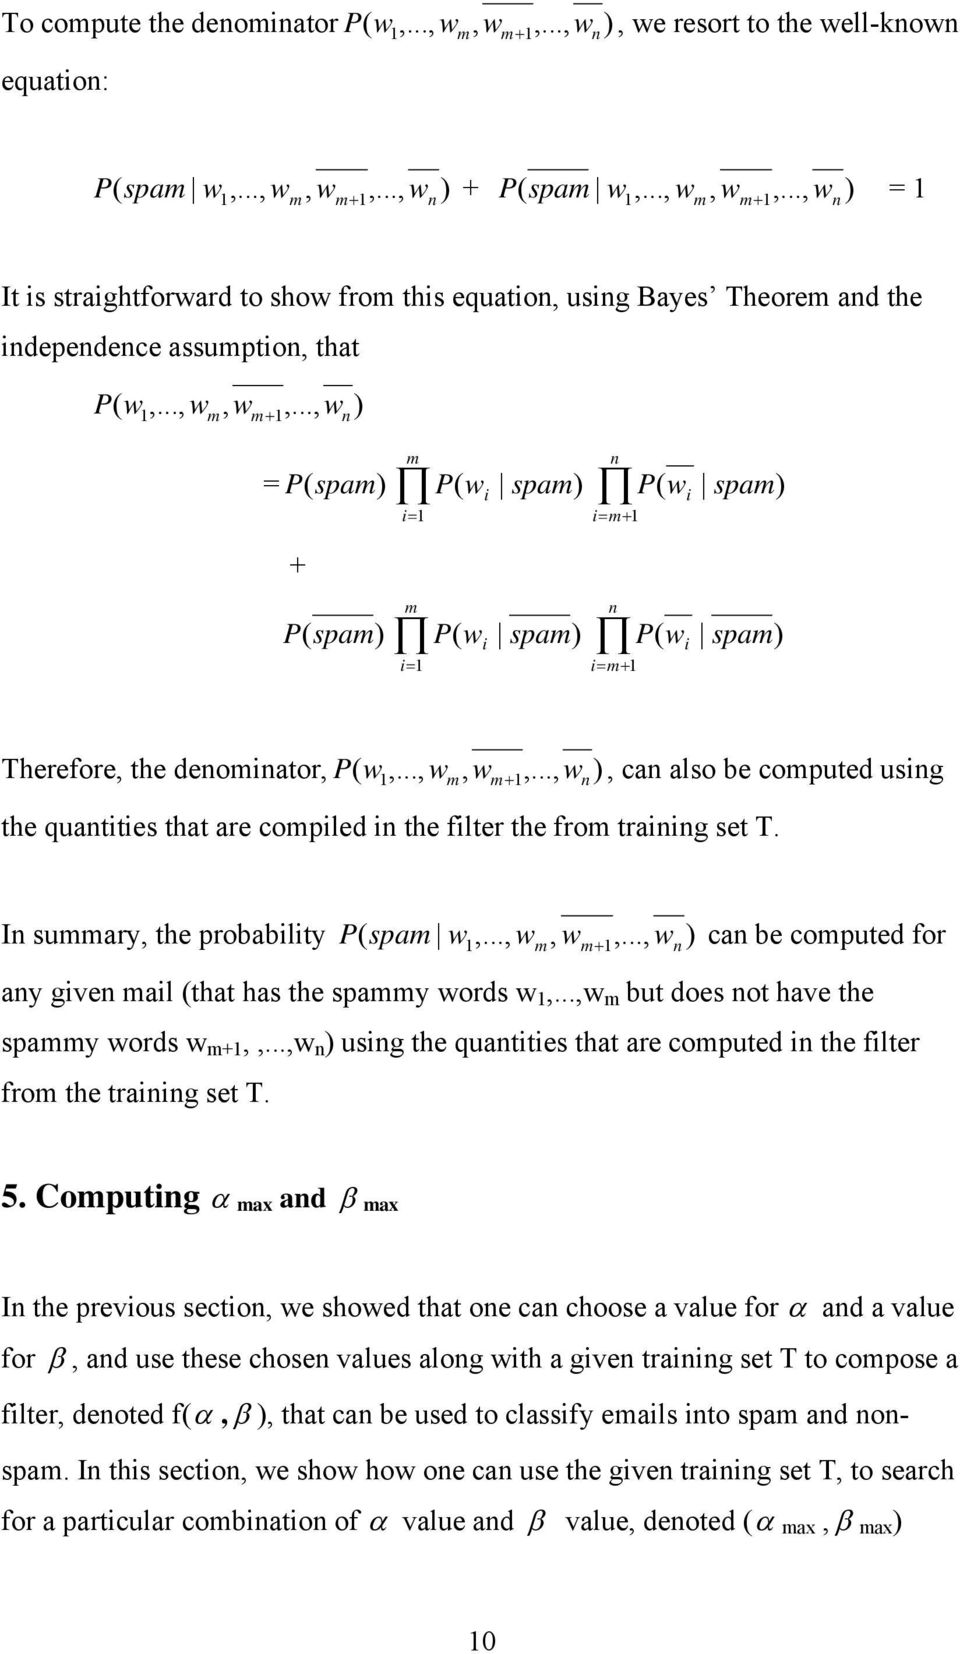 .., w ), can also be computed using ( 1 m m 1 n the quantities that are compiled in the filter the from training set T. In summary, the probability P spam w,..., w, w,.